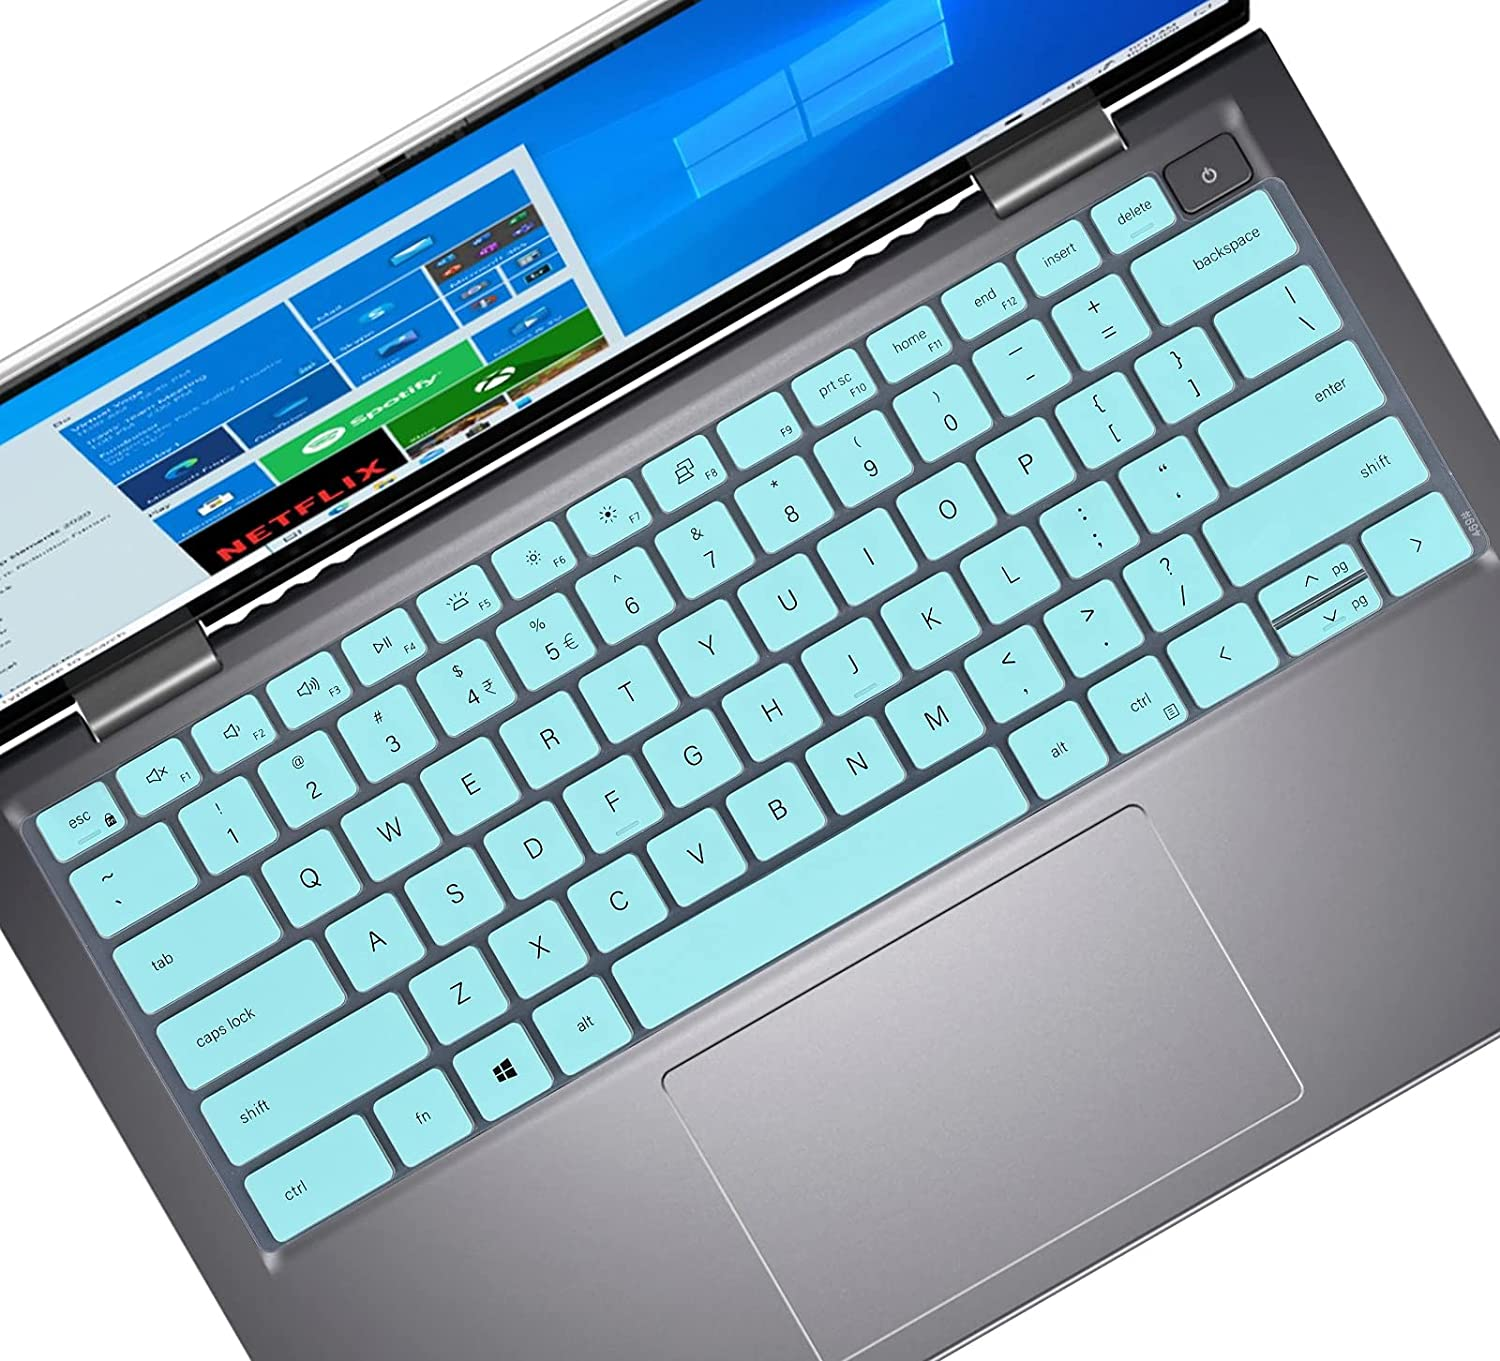 Keyboard Cover for 2021 New Dell inspiron 13 5310, inspiron 14 5410 7415, Latitude 3320 3420 Laptop, Dell inspiron 13 5310 & inspiron 14 5410 7415 Keyboard Skin Accessories - Mint